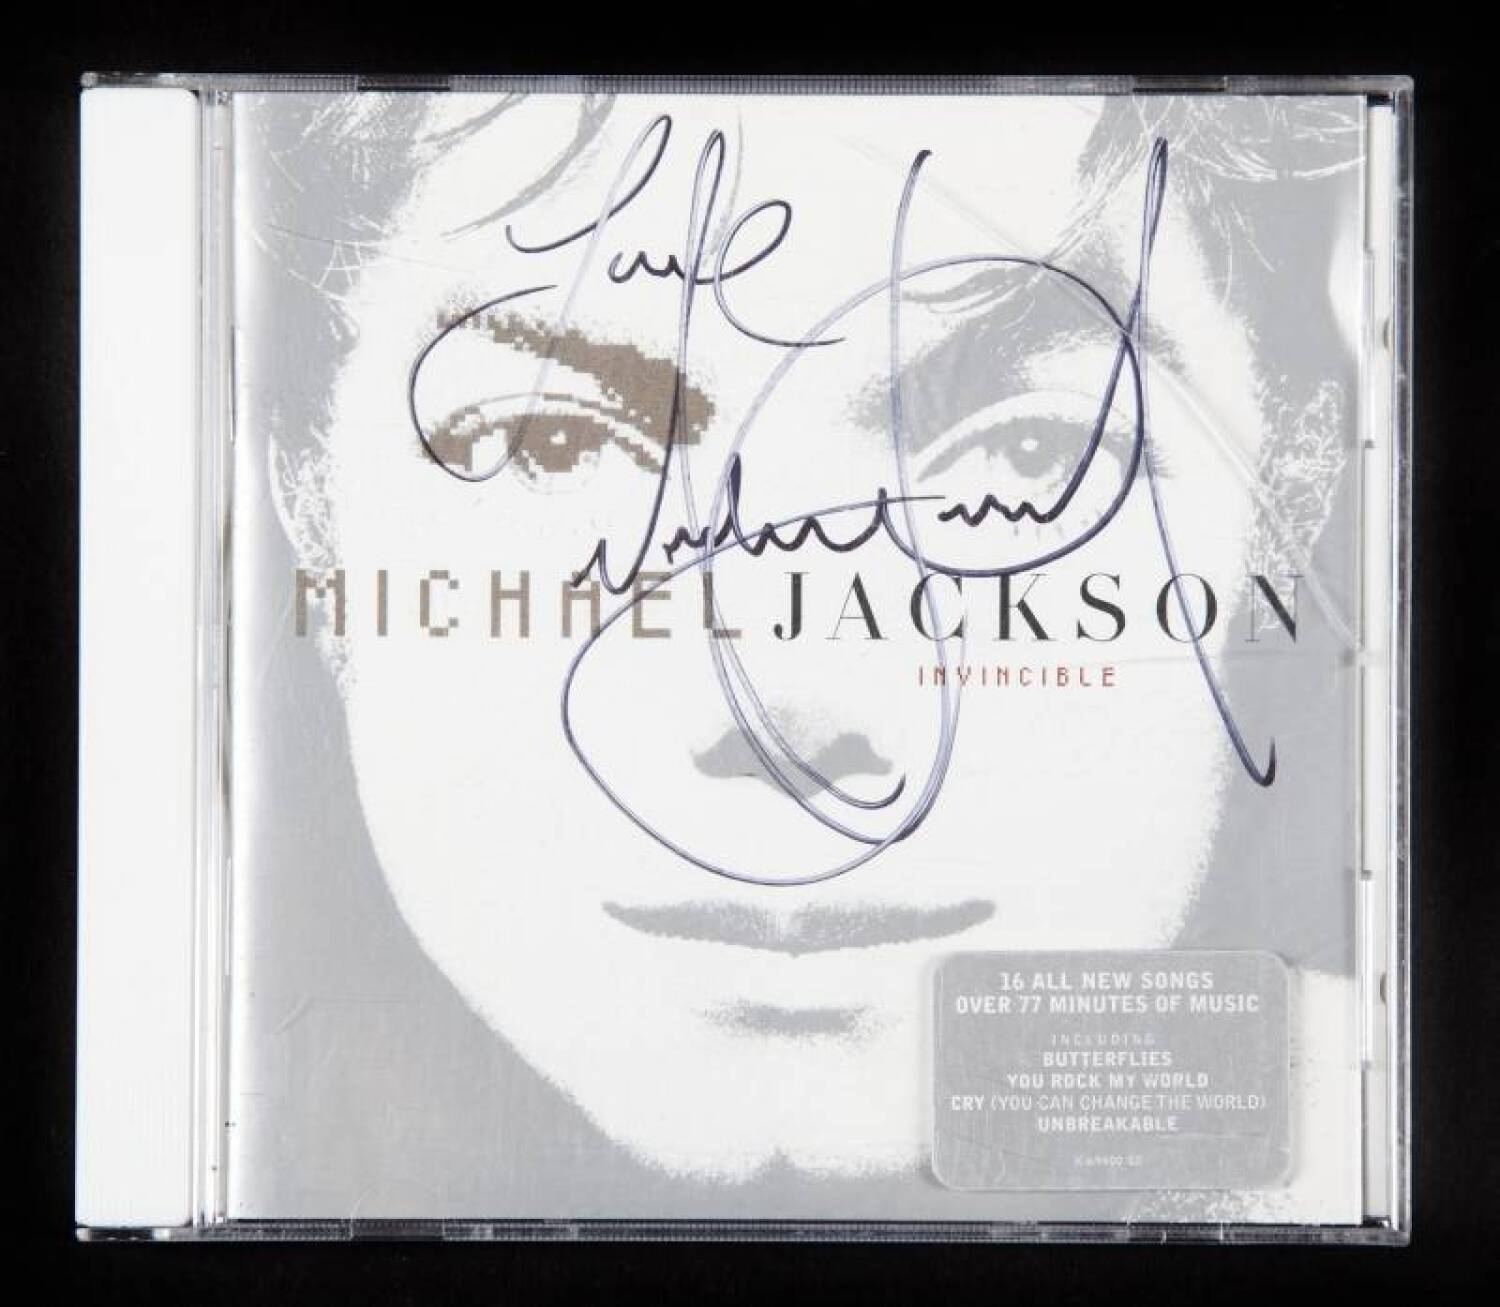 MICHAEL JACKSON SIGNED INVINCIBLE CD - Current price: $750